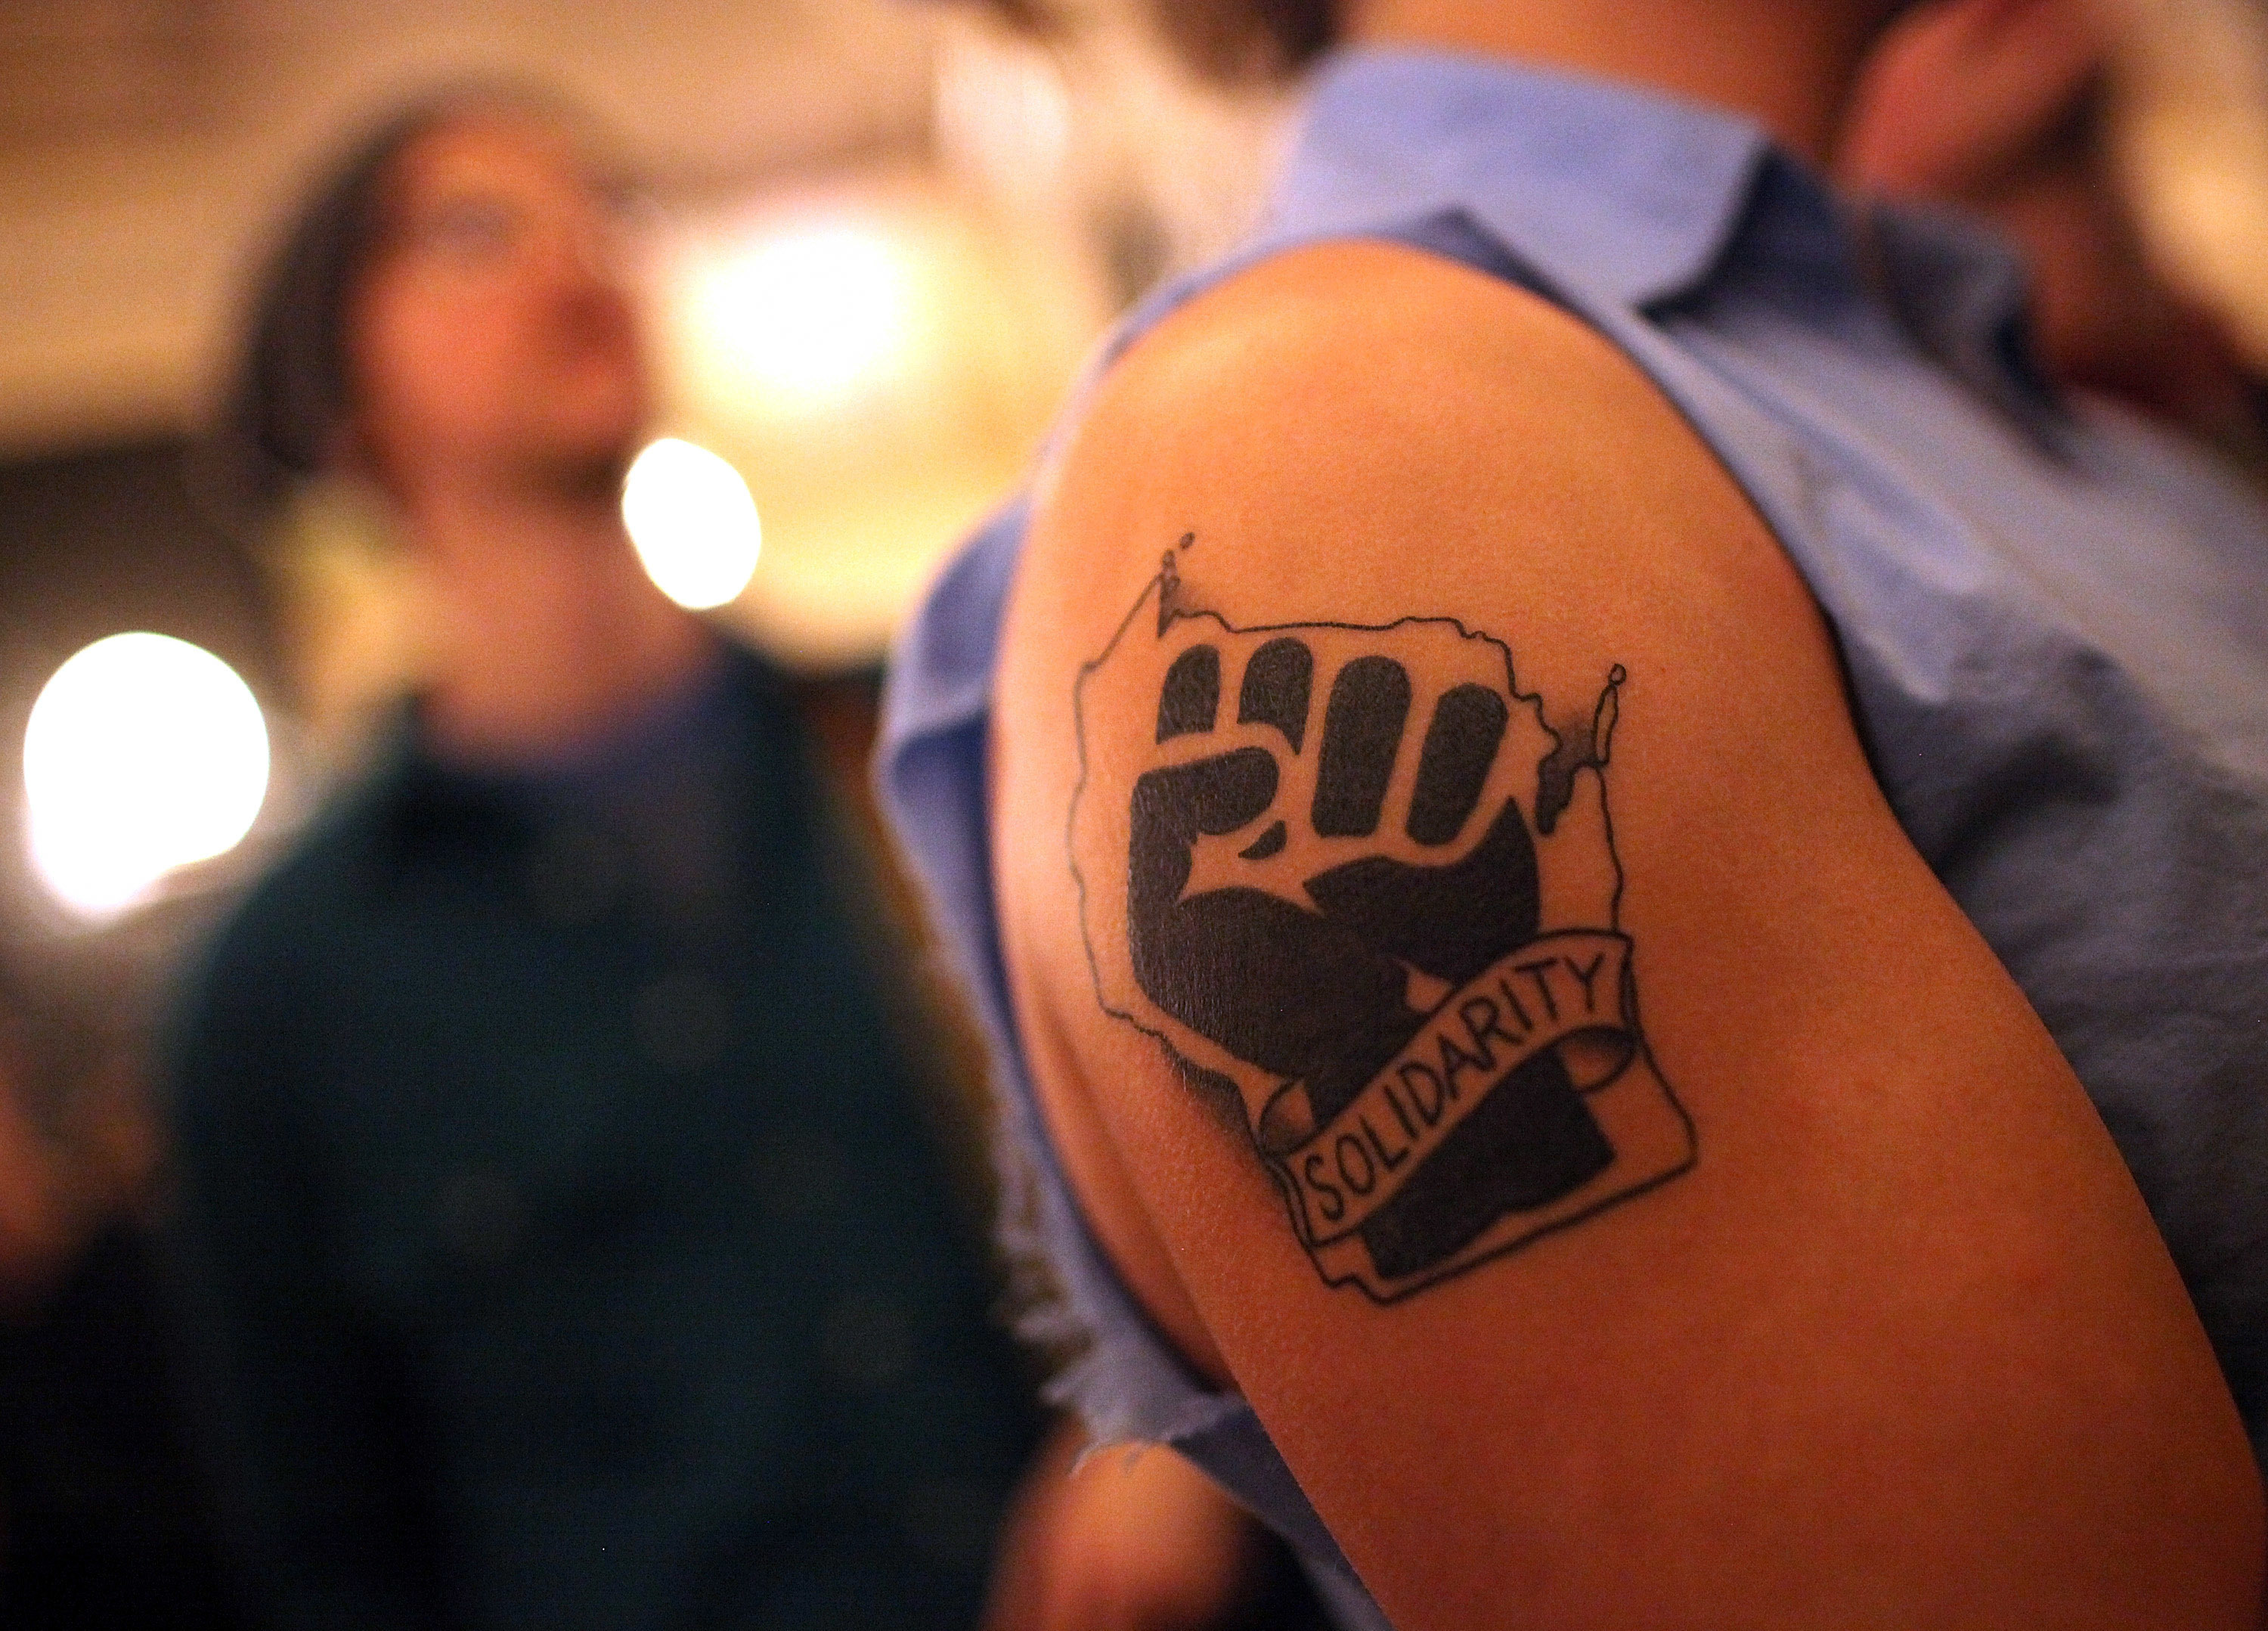 This tattoo could be used against you nist plan moves for Arguments against tattoos